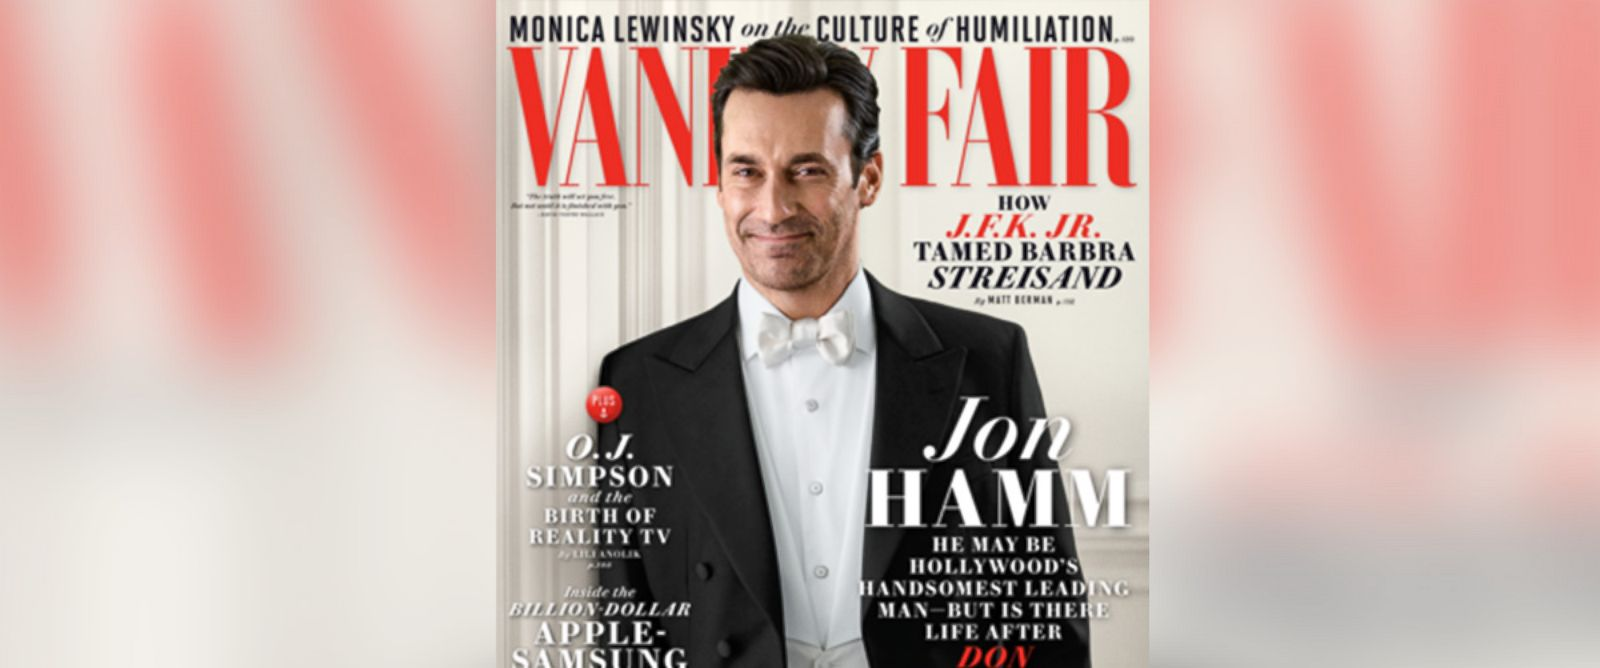 PHOTO: Jon Hamm is pictured on the June 2014 cover of Vanity Fair.